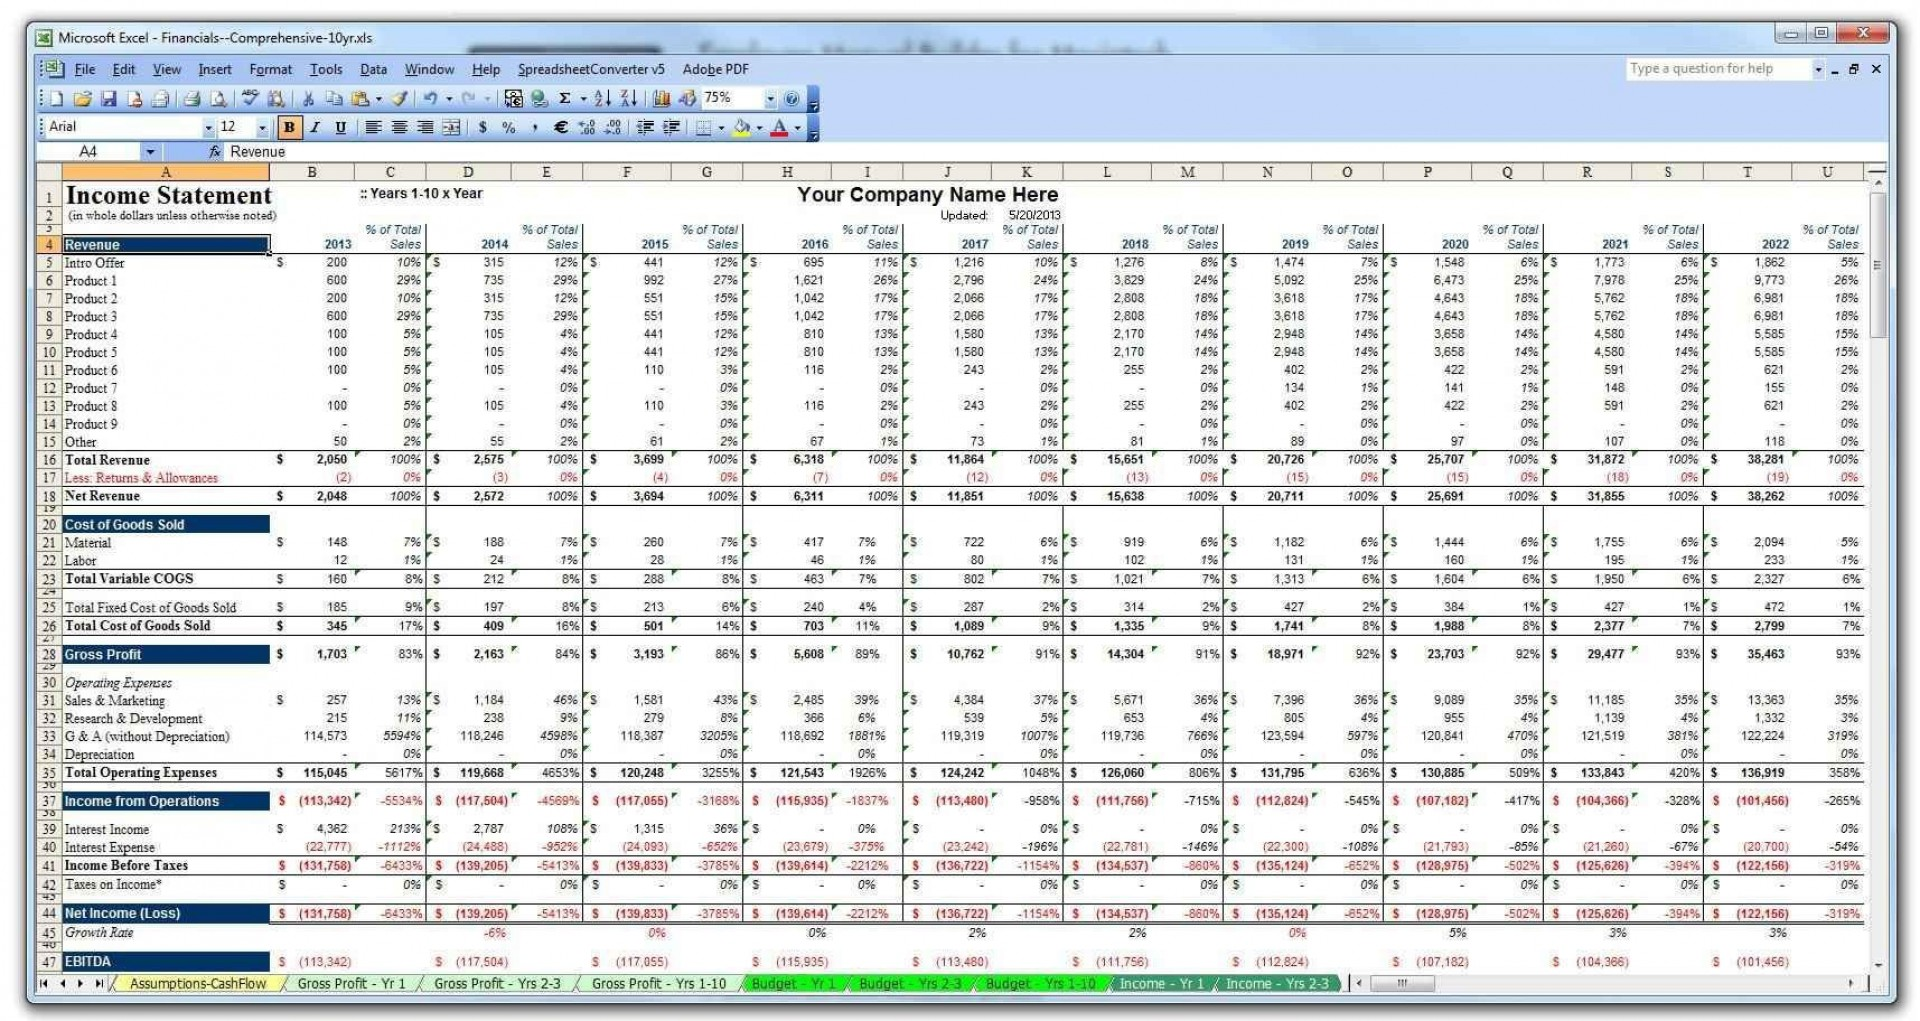 002 Astounding Excel Busines Plan Template Free Sample  Startup Continuity1920